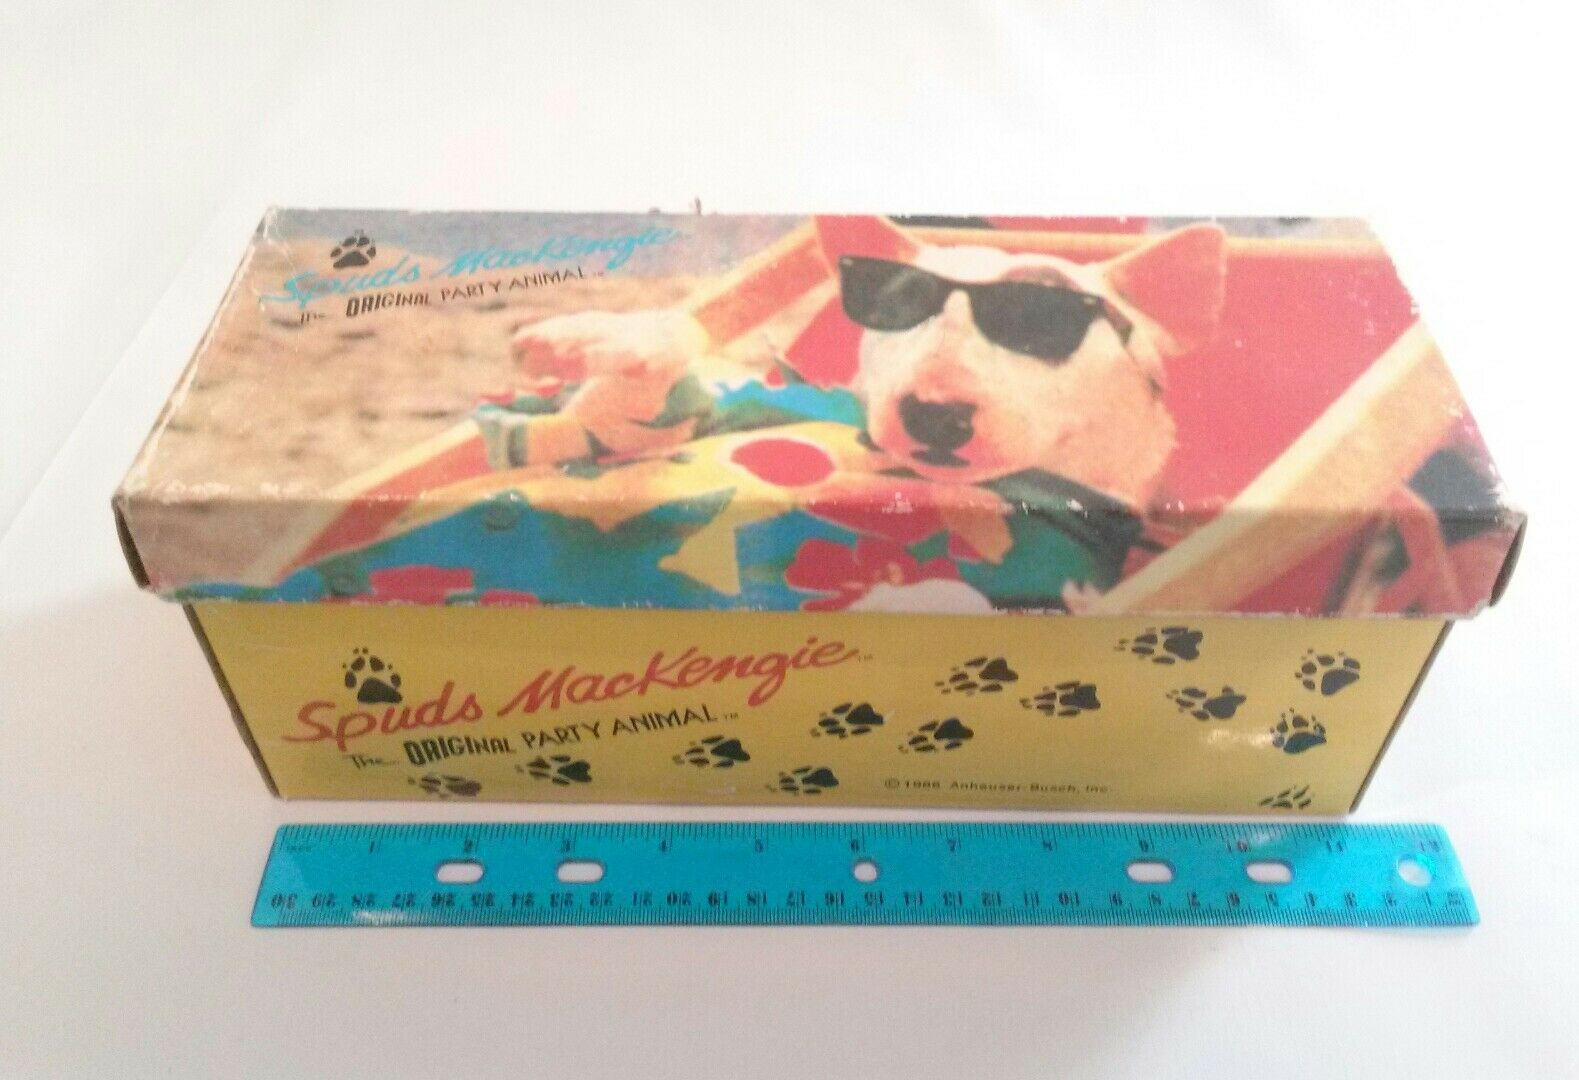 Spuds Mackenzie Empty Shoe Box Only Budweiser Bud Light Anheuser